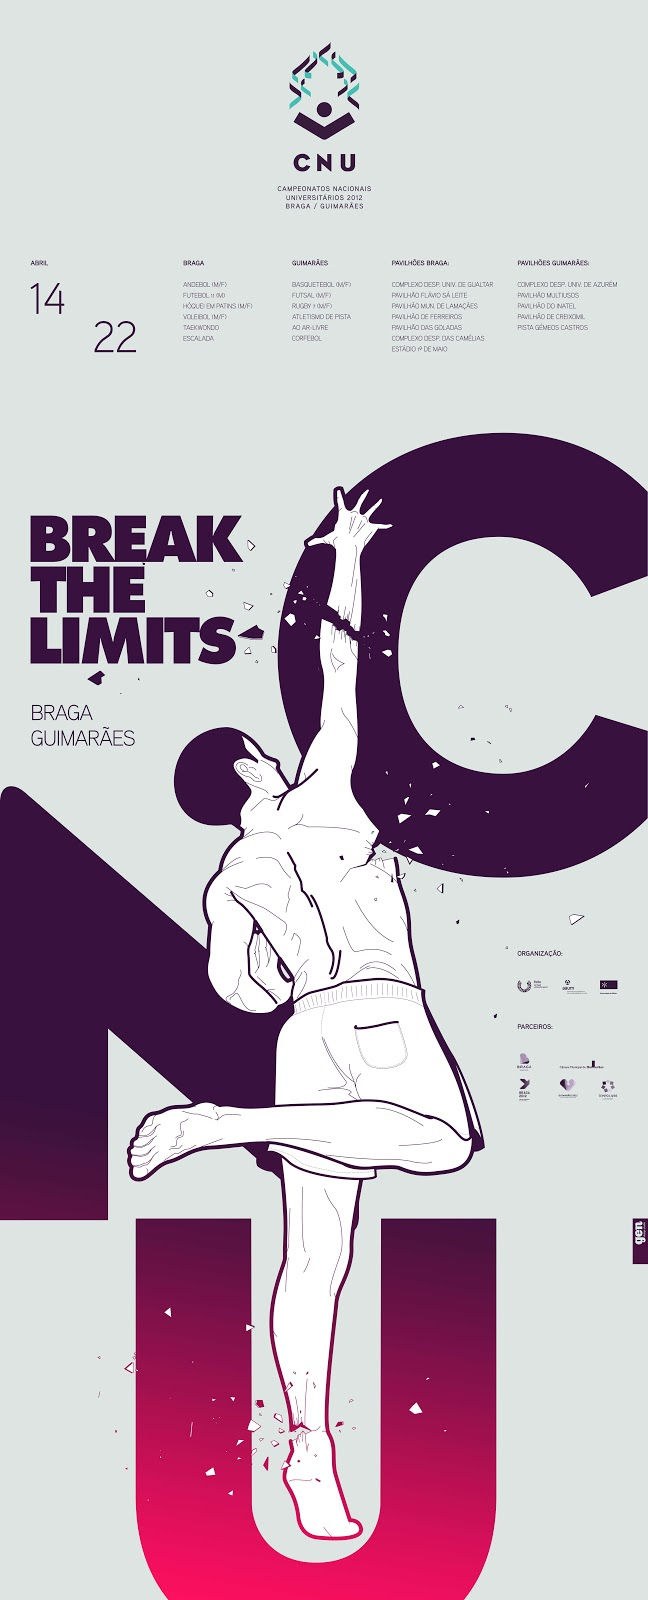 CNU-Break-the limits-Gen-Desing-Studio-sport-sillhouette